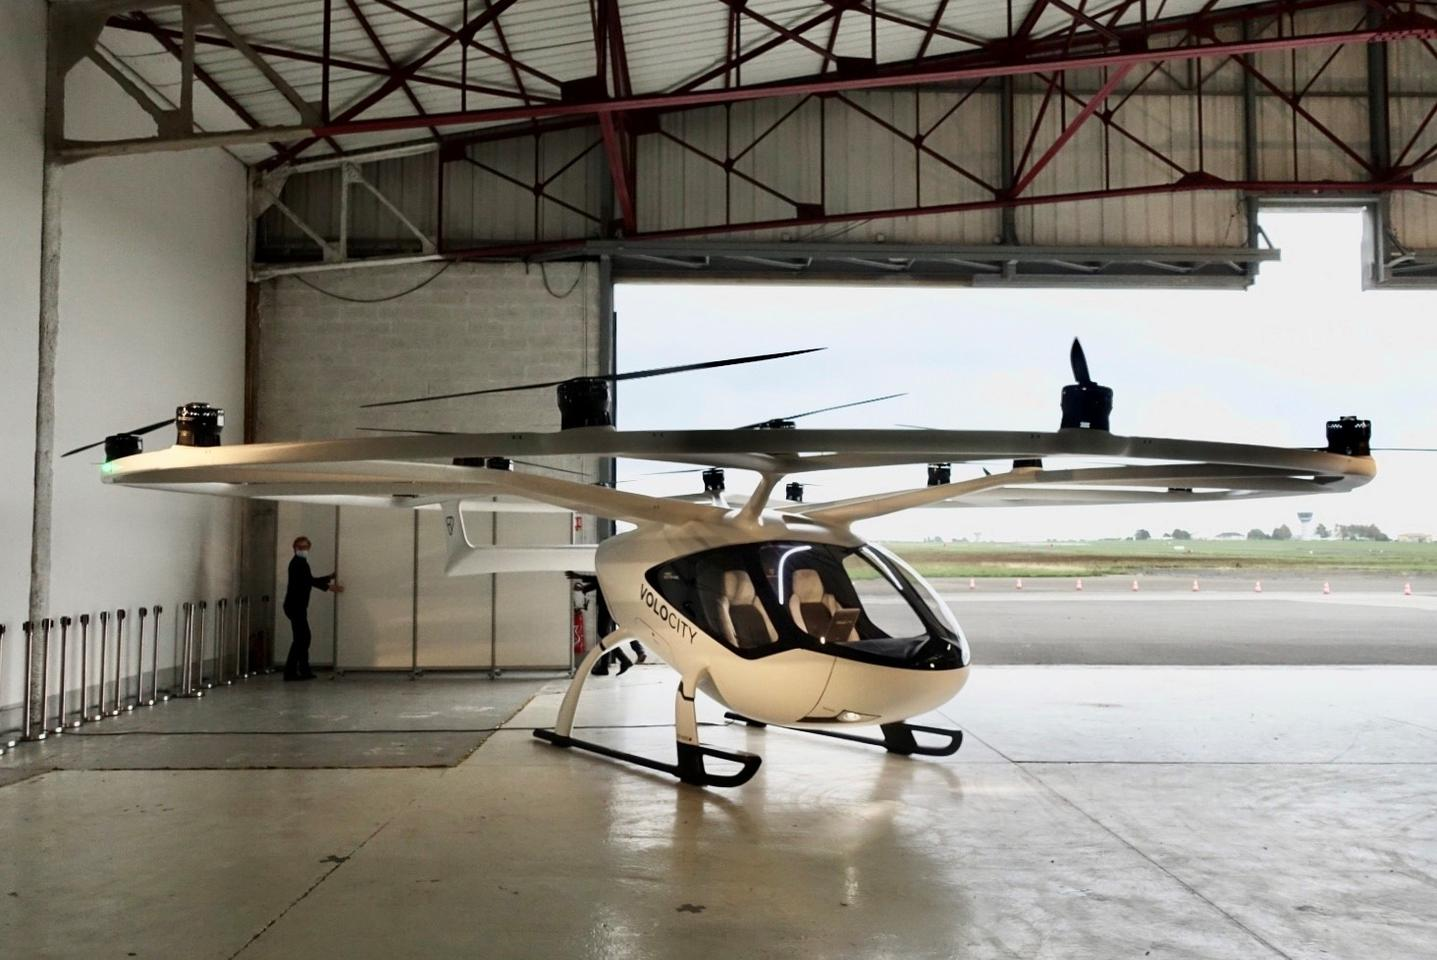 The VoloCity air taxi will undergo testing at the Pontoise airfield from mid-2021